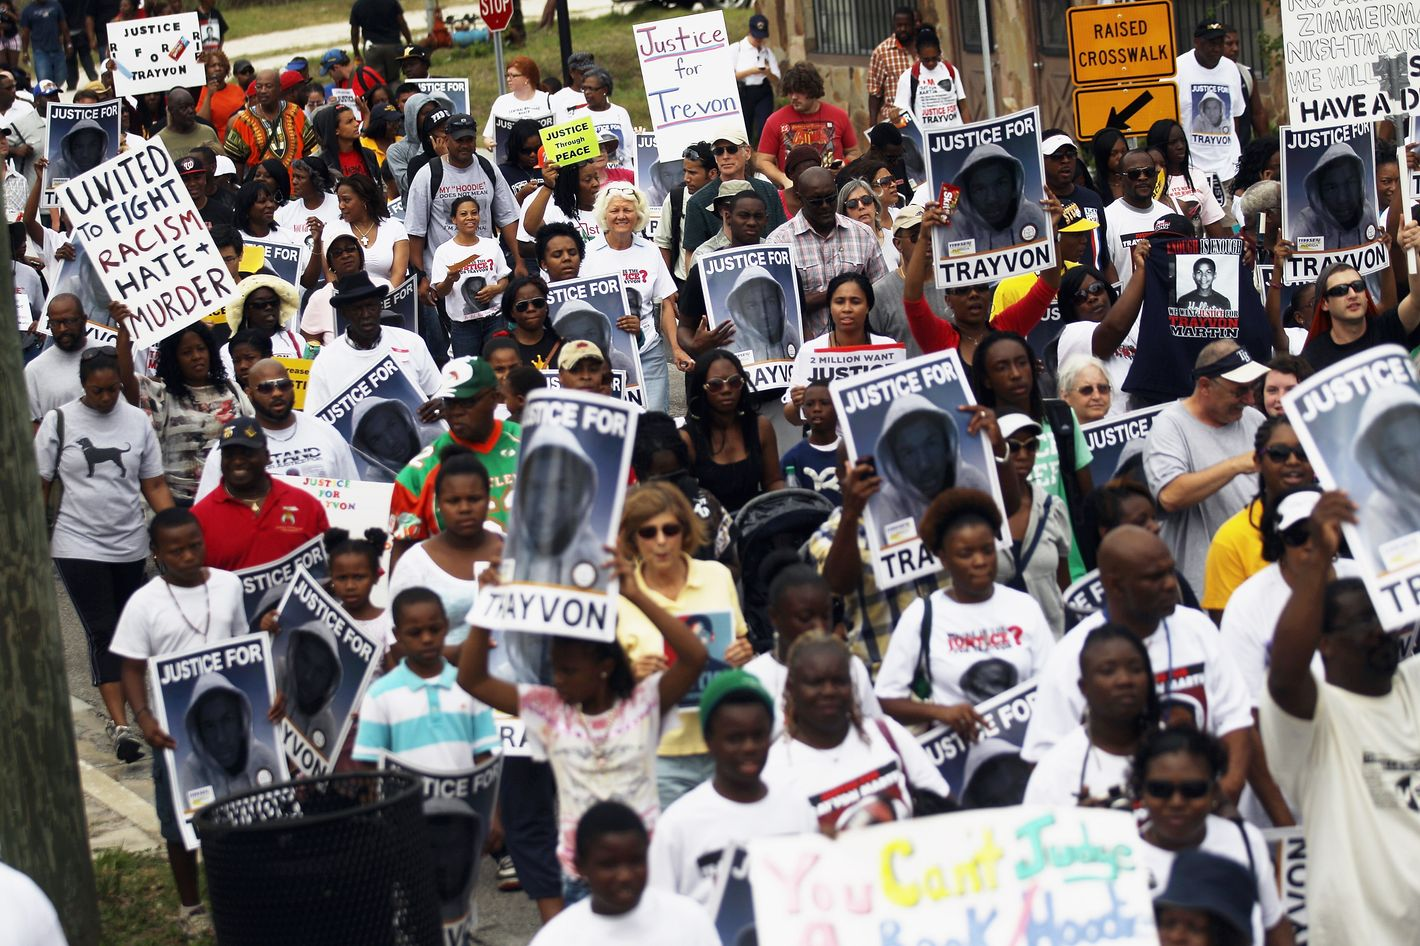 SANFORD, FL - MARCH 31: Trayvon Martin supporters march through the historically African American community of Goldsboro on their way to an NAACP rally in front of the Sanford Police Department on March 31, 2012 in Sanford, Florida. Martin was killed by George Michael Zimmerman while on neighborhood watch patrol in the gated community of The Retreat at Twin Lakes. Rev. Jesse Jackson, Rev. Al Sharpton and NAACP President Benjamin Jealous were amongst the supporters demanding Zimmerman's arrest. (Photo by Mario Tama/Getty Images)